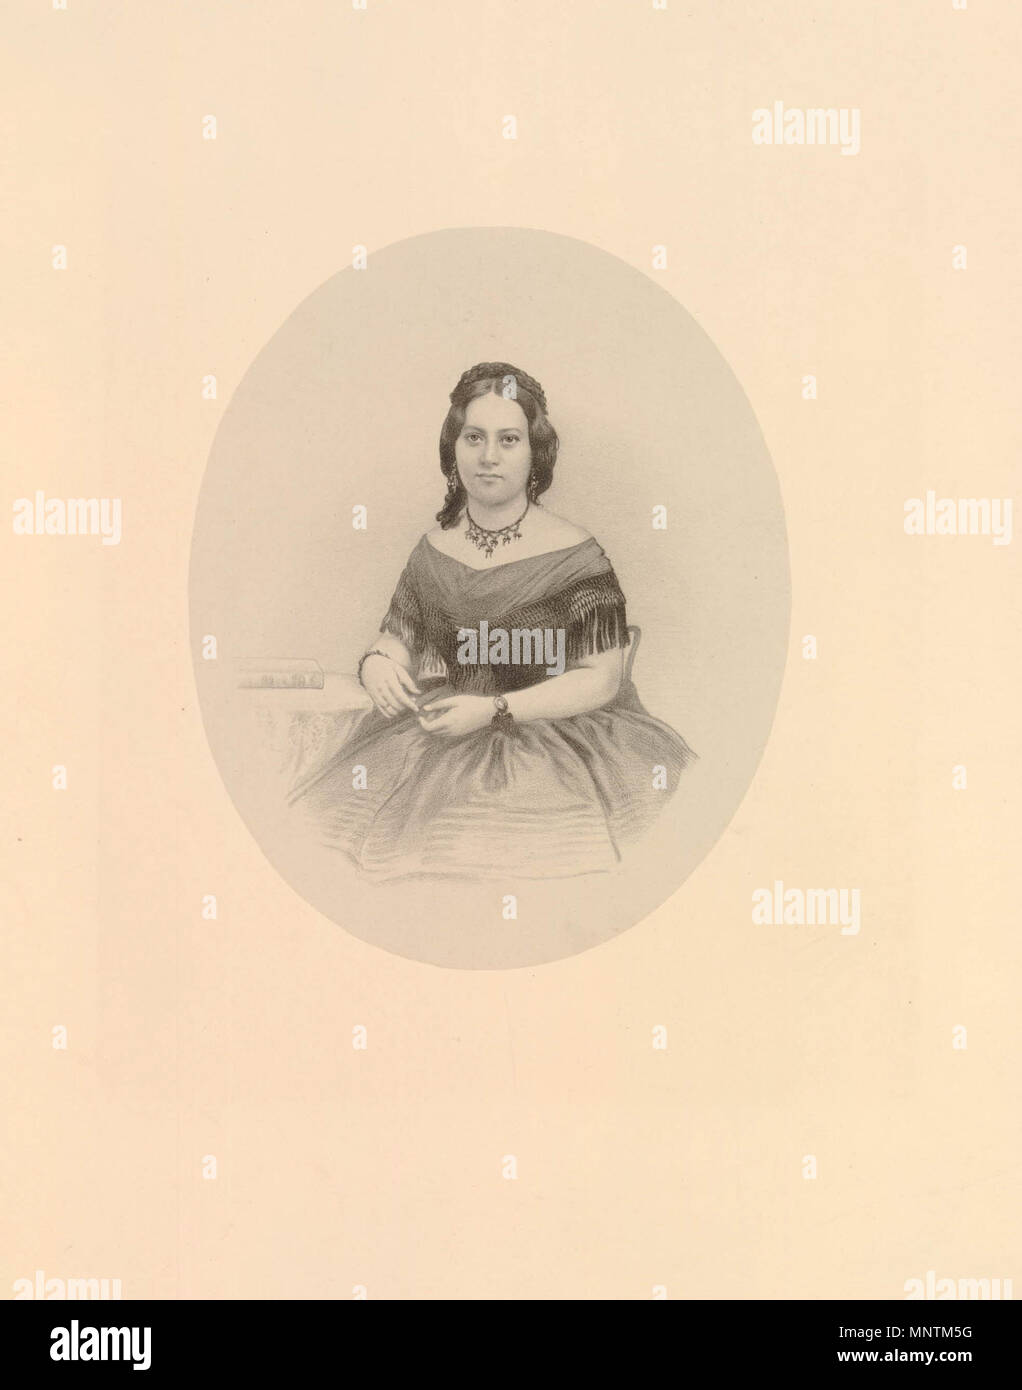 . English: Queen Emma of Hawaii by Richard James Lane, lithograph, circa 1825-1850 . circa 1861.   Richard James Lane (1800–1872)   Alternative names Richard J. Lane  Description English engraver and lithographer  Date of birth/death 16 February 1800 21 November 1872  Location of birth Berkeley Castle  Authority control  : Q7326816 VIAF:59348682 ISNI:0000 0000 6658 4871 ULAN:500120153 LCCN:n81054202 SUDOC:119740117 WorldCat 1035 Queen Emma of Hawaii by Richard James Lane, lithograph, circa 1825-1850 - Stock Image